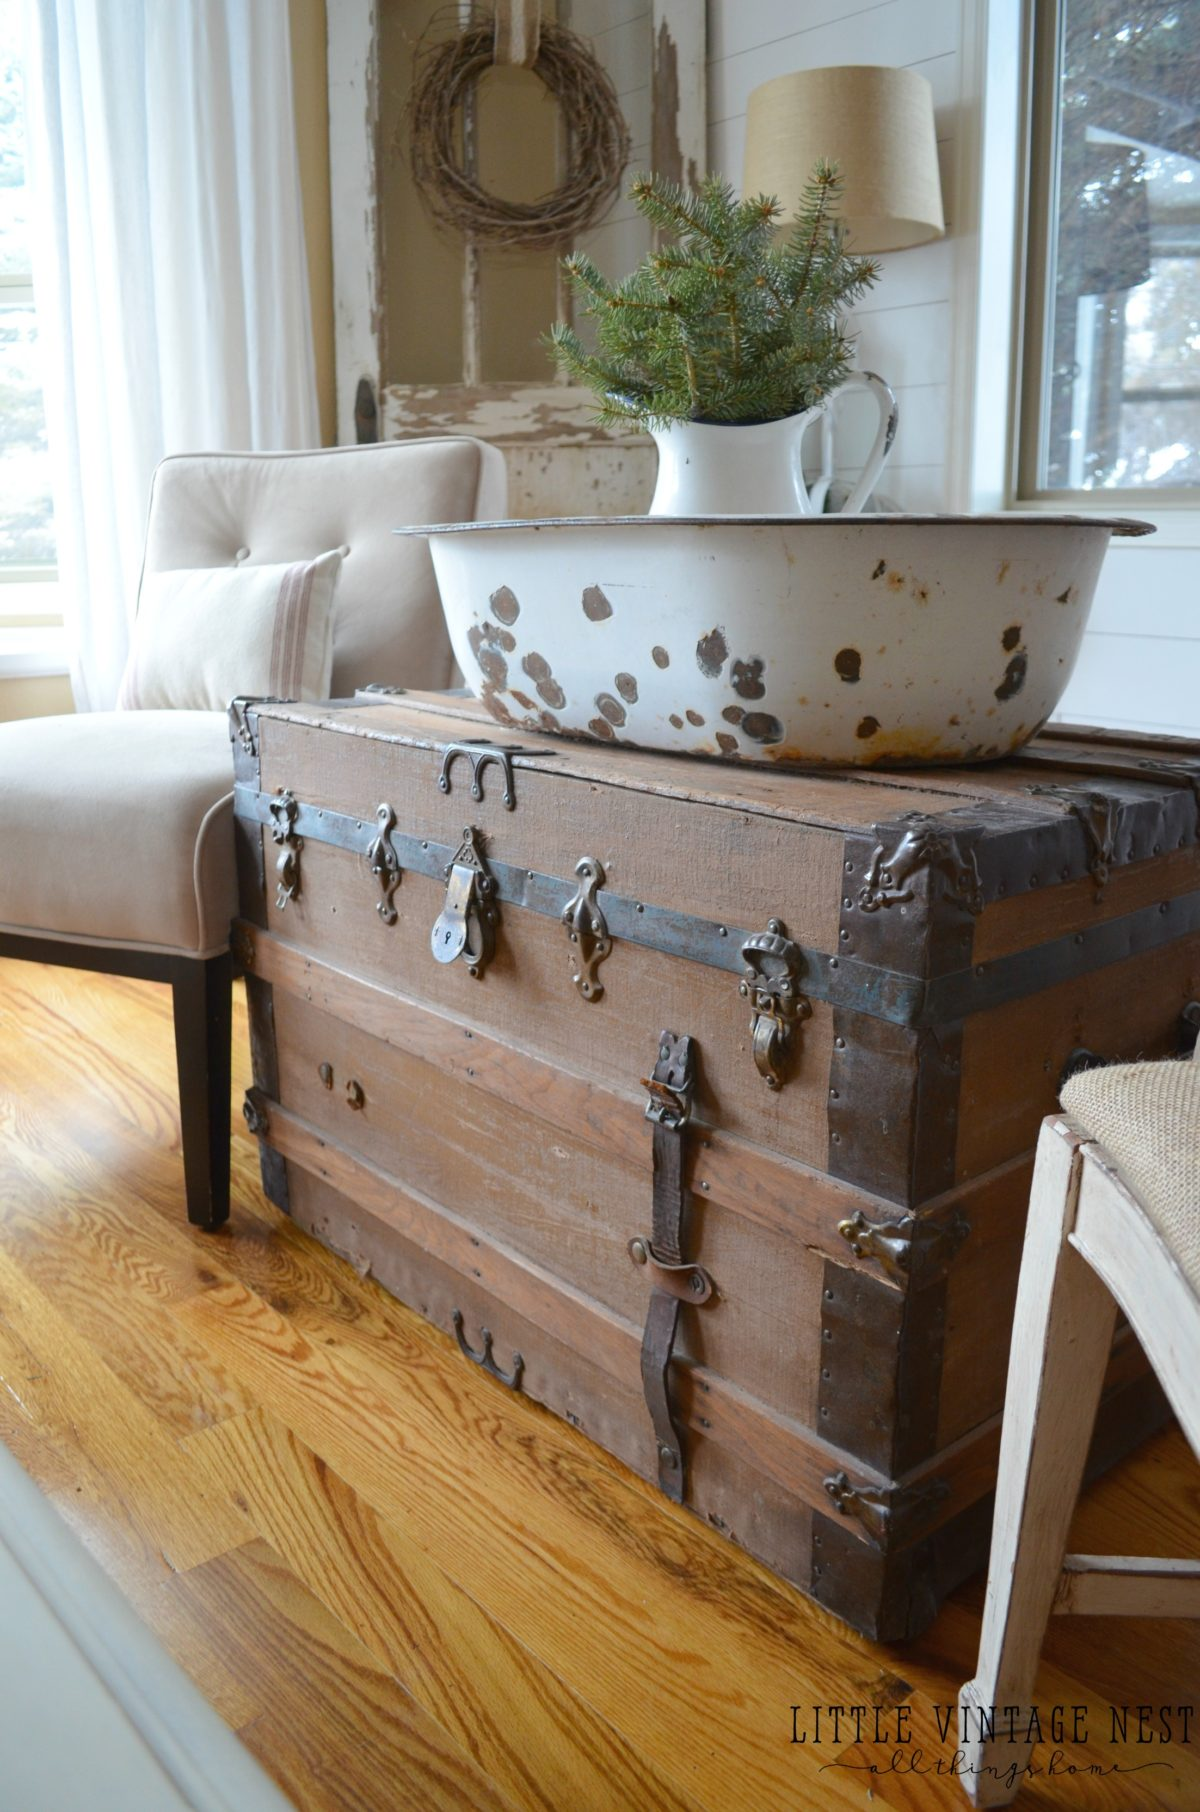 Old vintage trunk used as coffee table